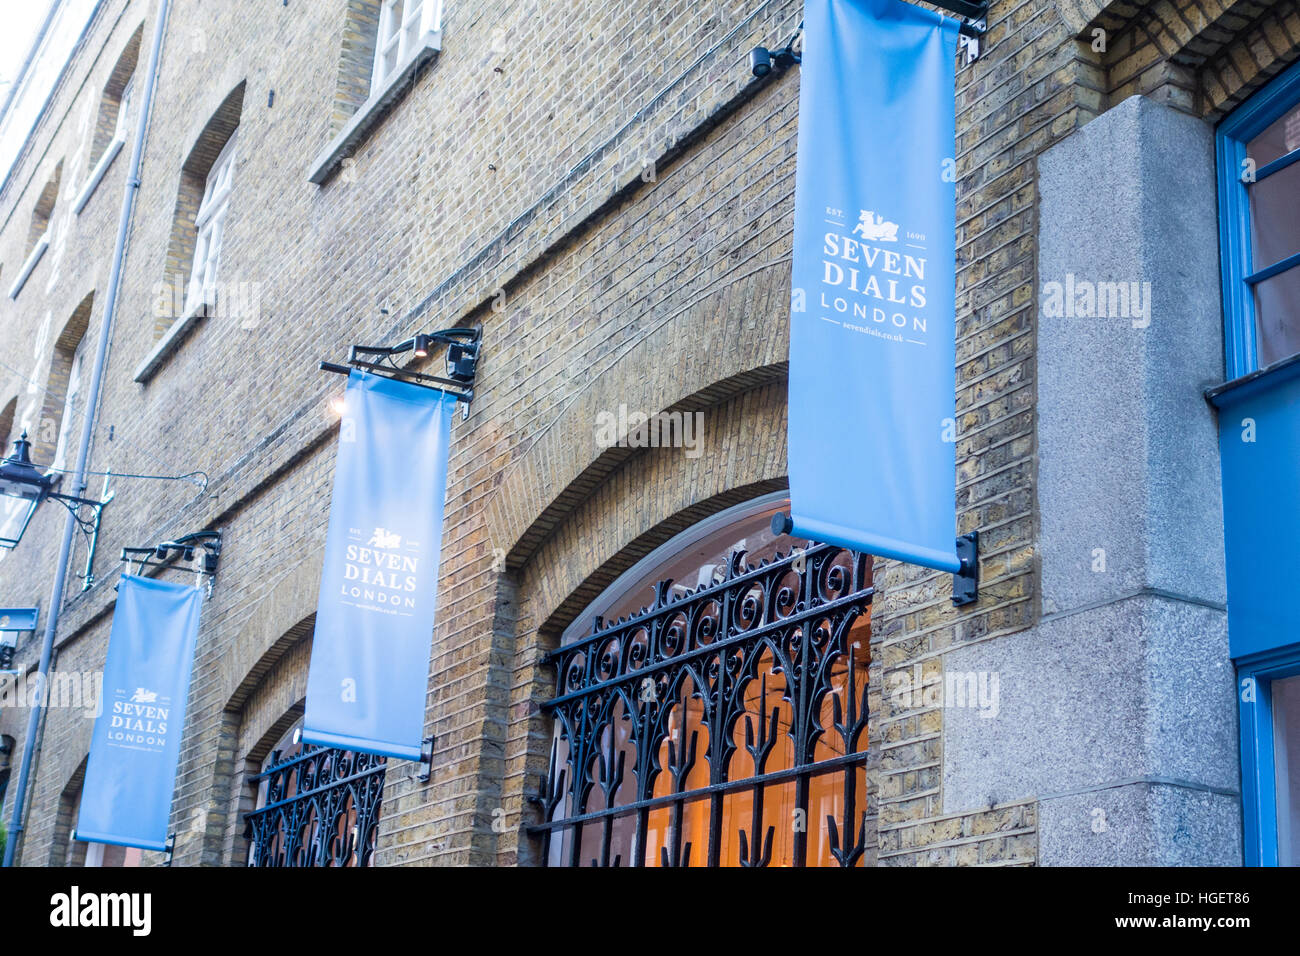 Sign or banner in the Seven Dials area of London near Covent Garden. UK - Stock Image